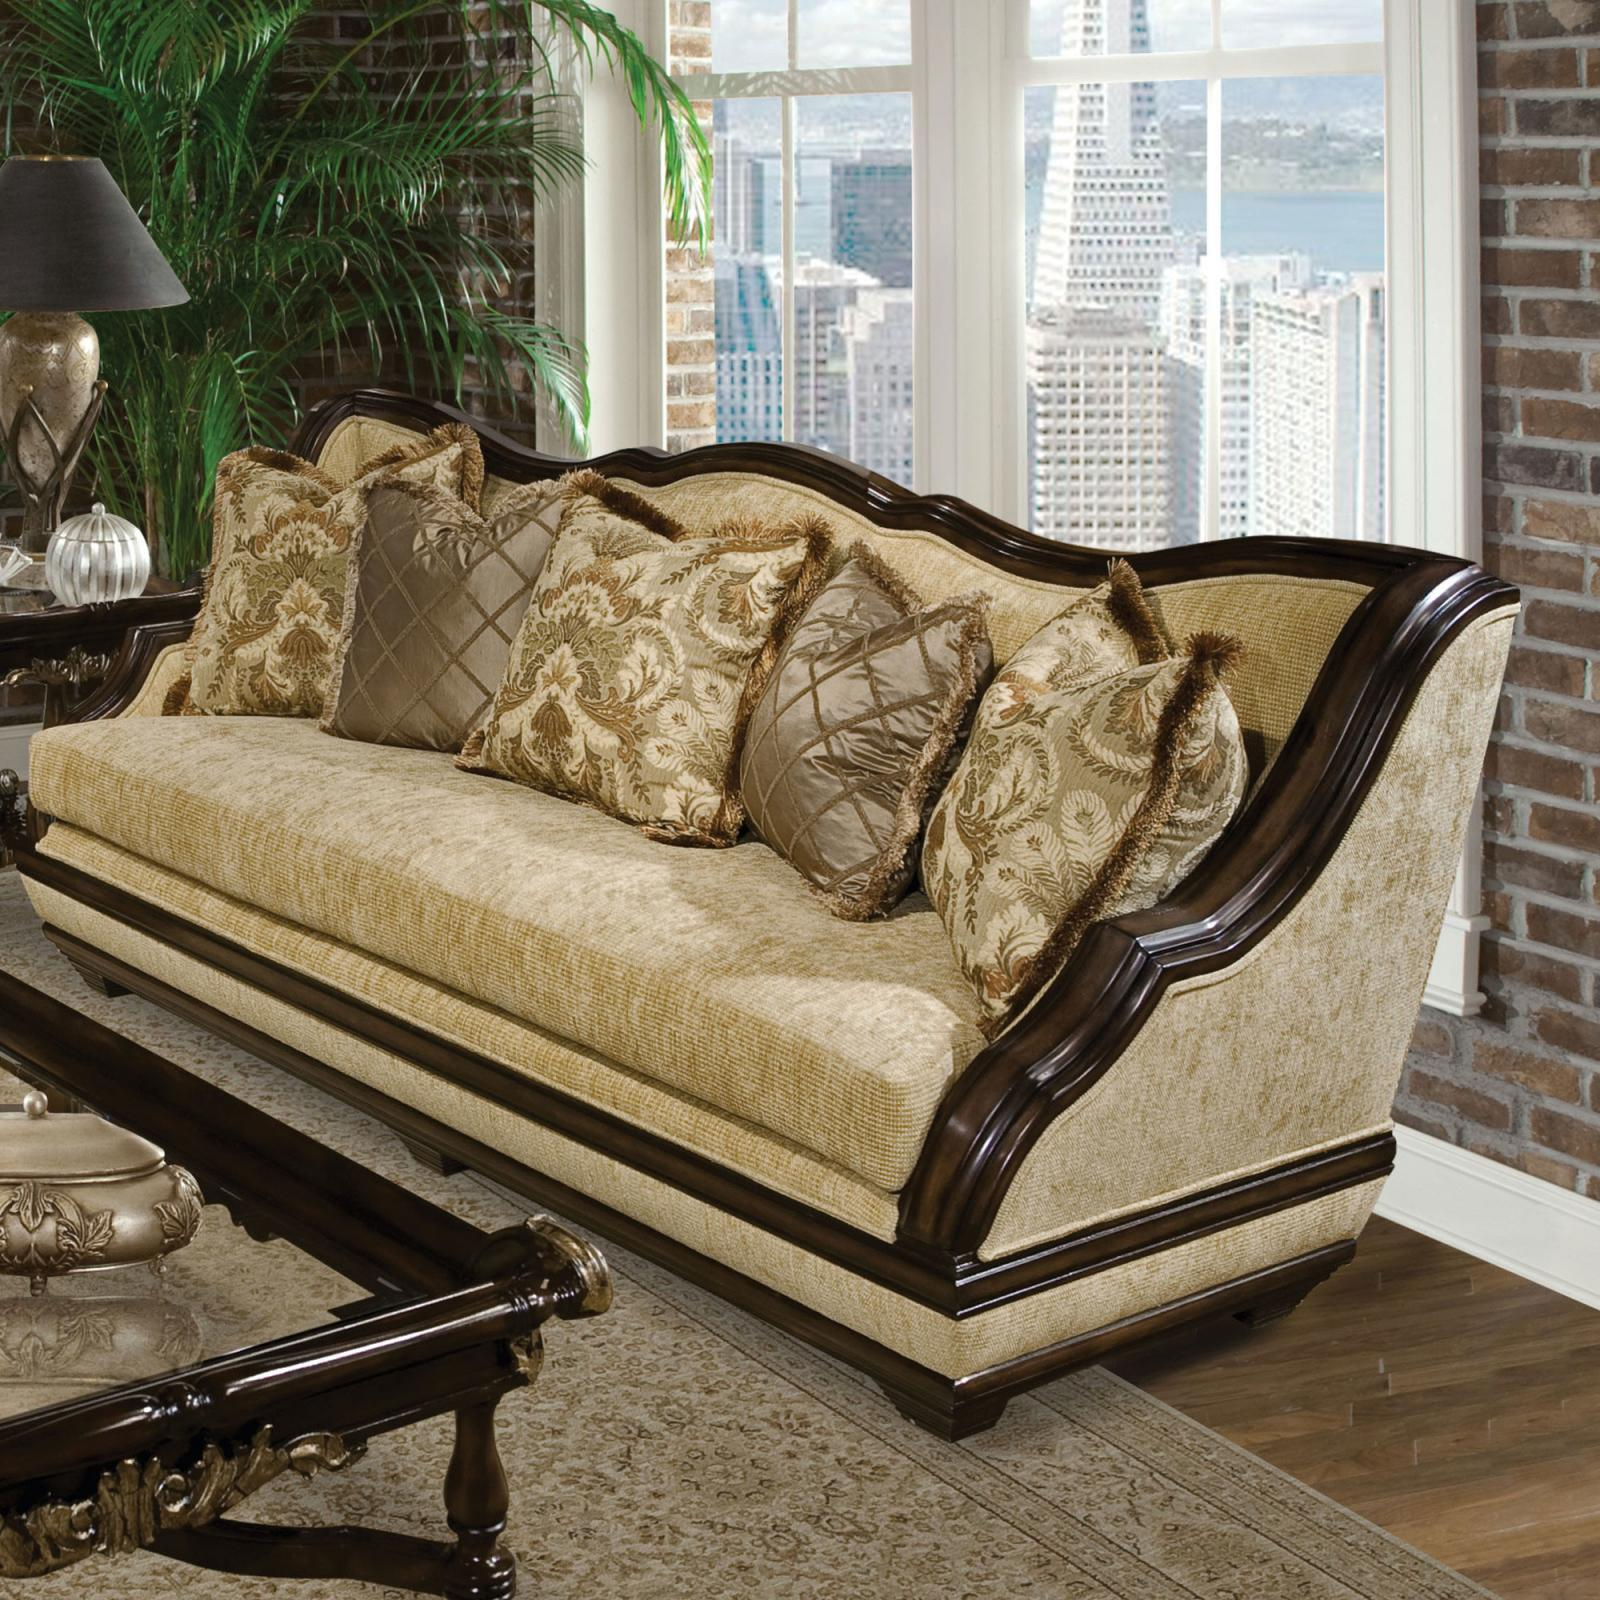 Classic, Traditional Beige, Desert sand Fabric and Wood Veneers, Solid Hardwood Sofas 1 pcs Beladonna by Benneti